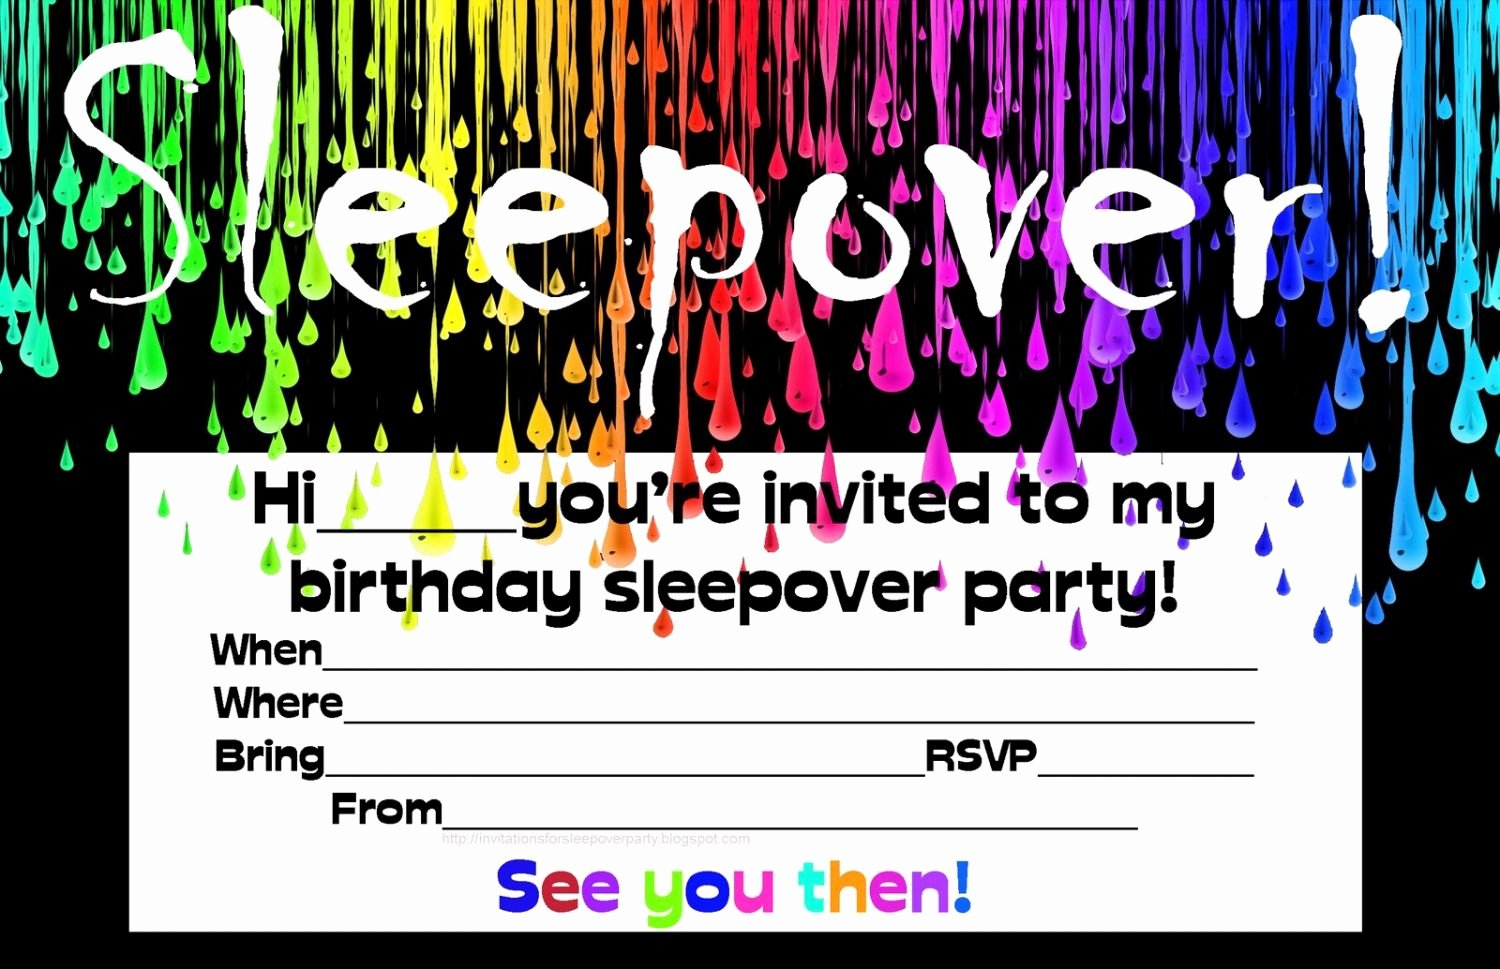 Slumber Party Invitation Template Awesome Free Printable Birthday Invitations for Boys Sleepover